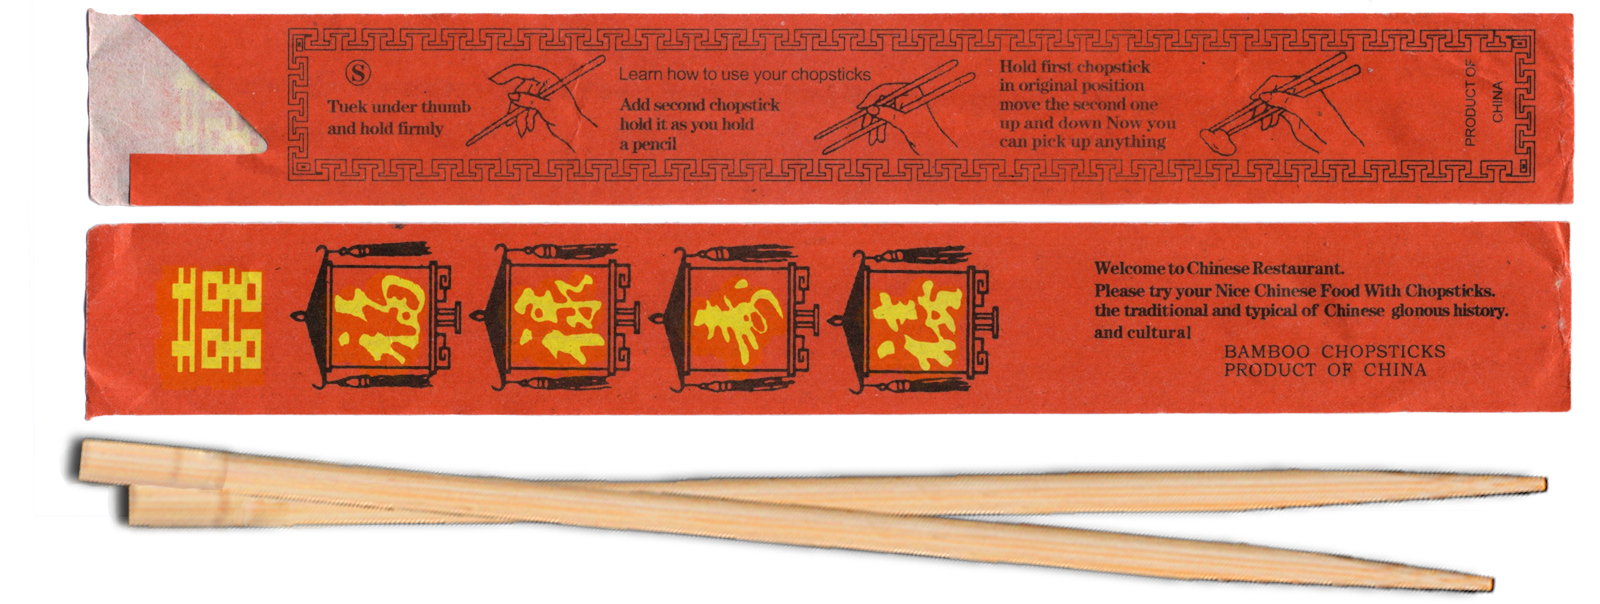 Bamboo Chop Sticks with Red Paper Wrapper, 4 Sets